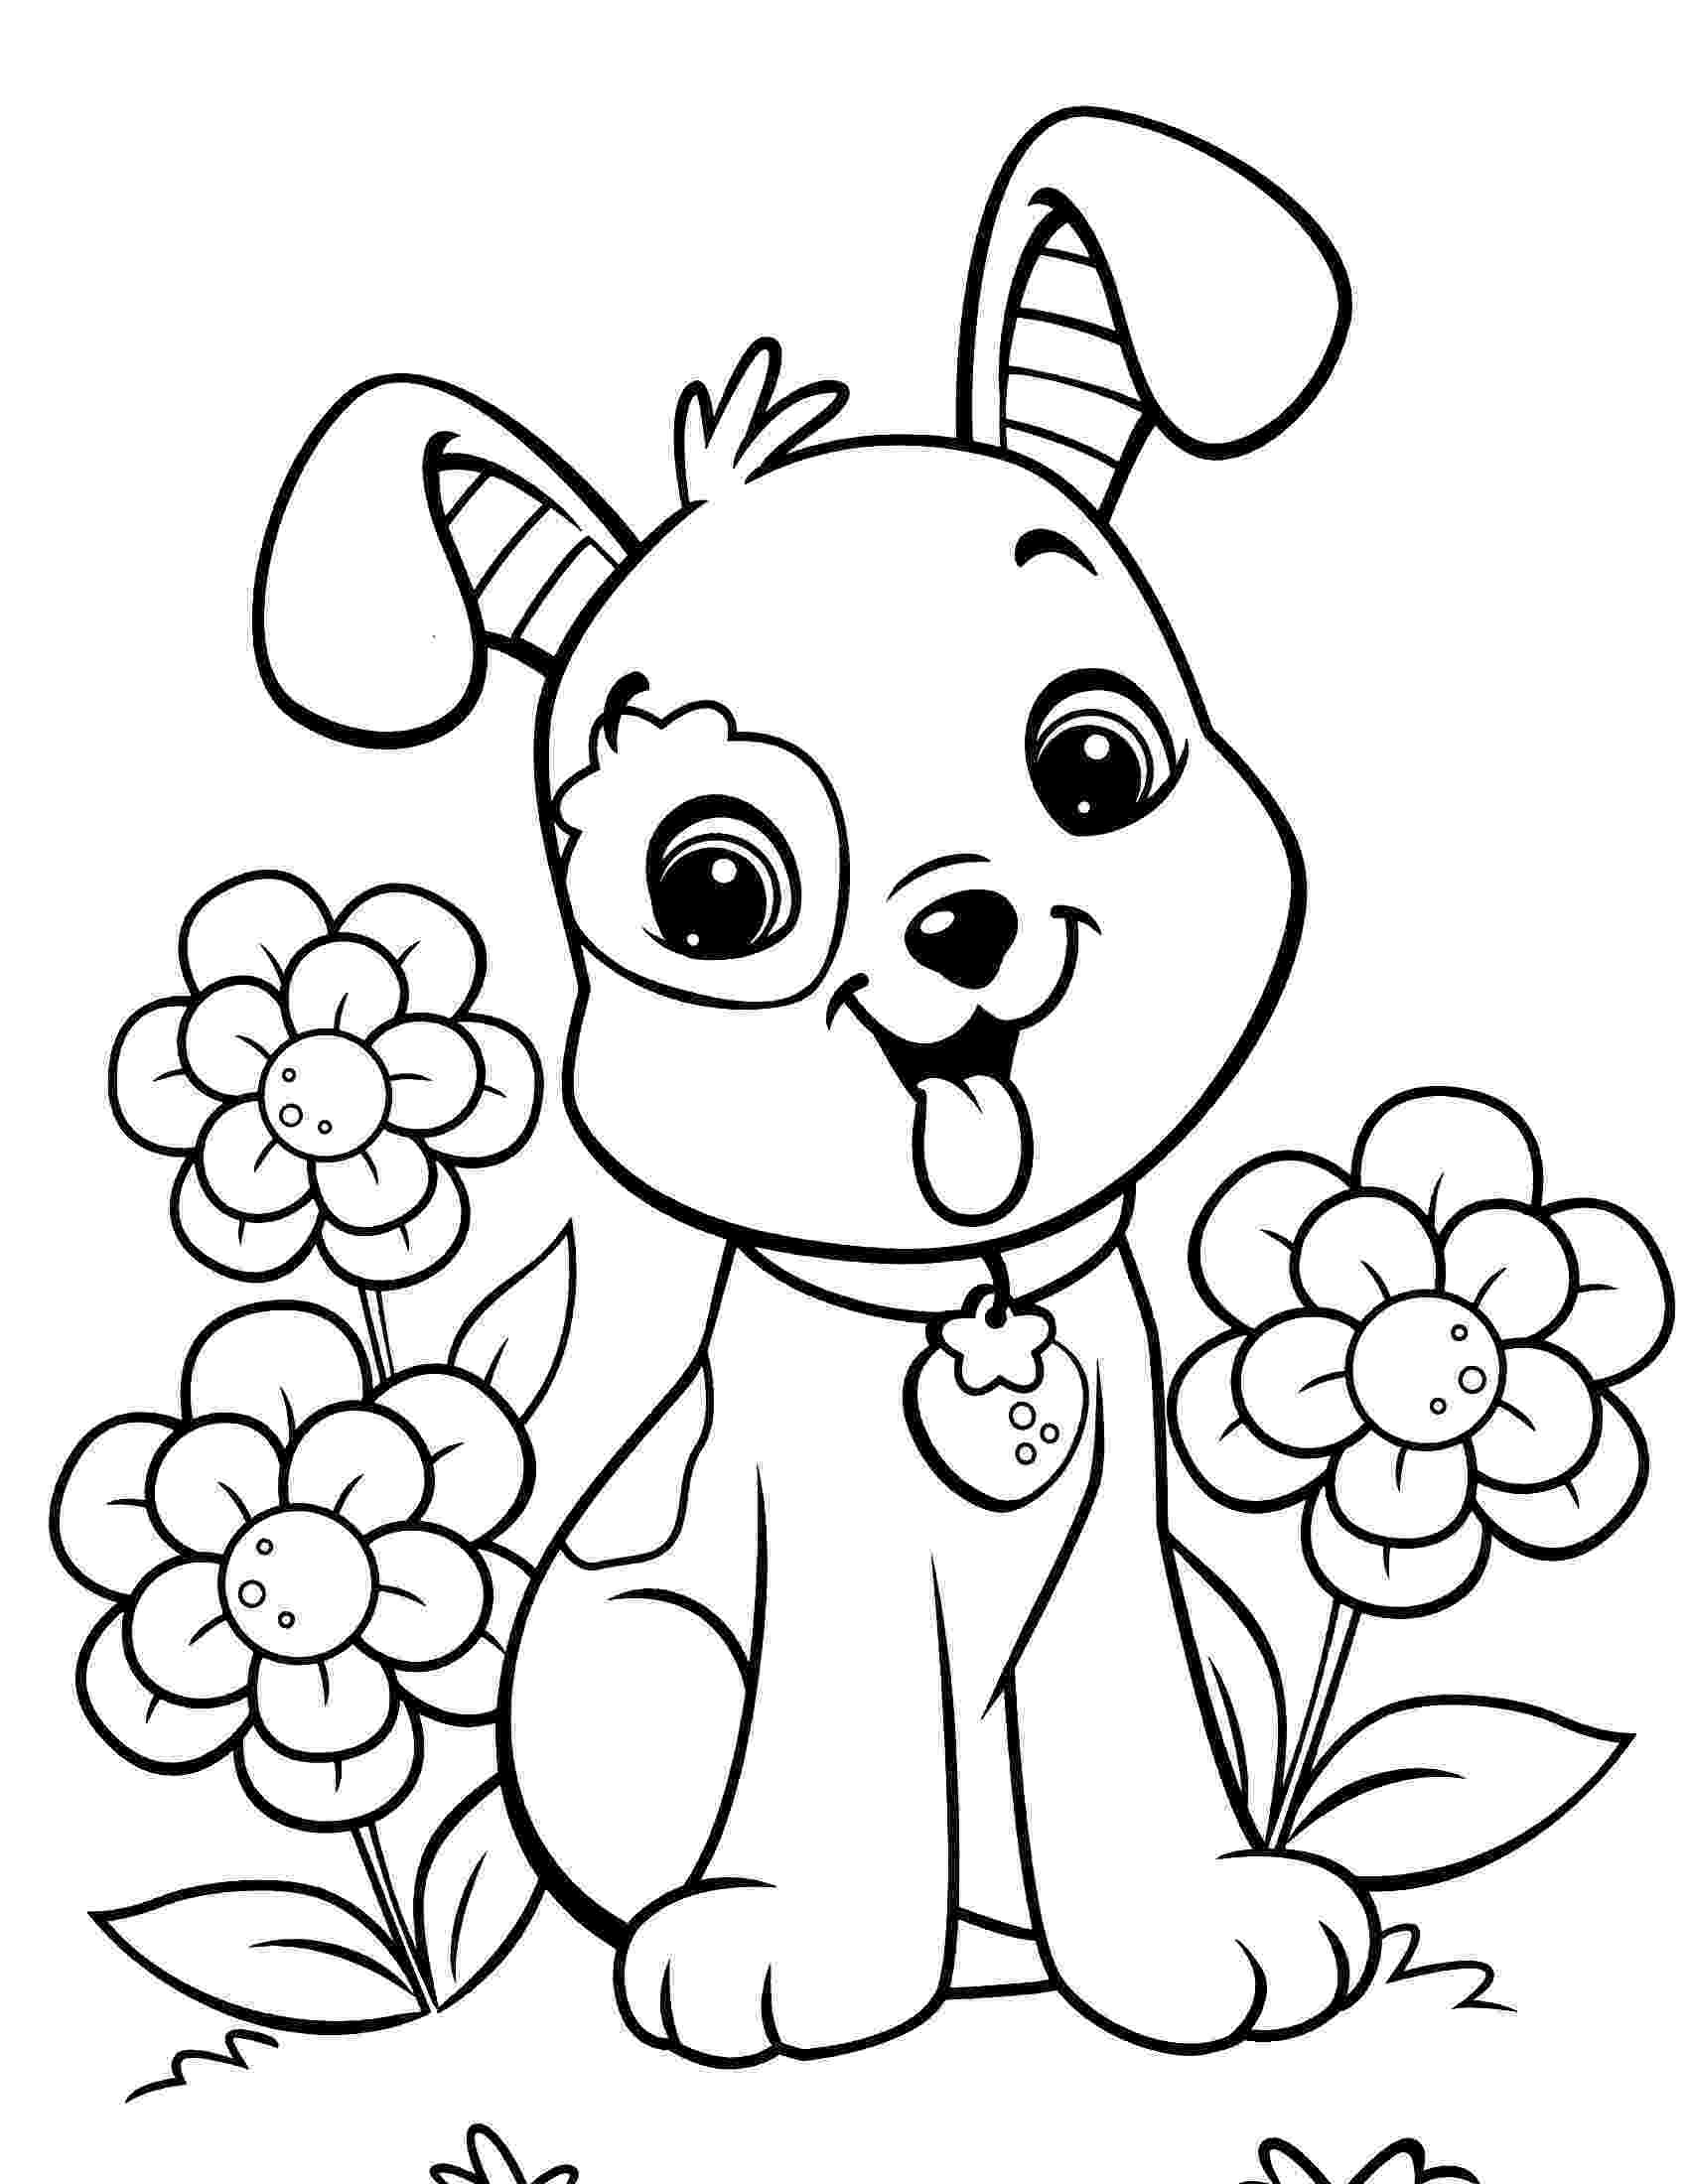 coloring pages to print dogs free printable dog coloring pages for kids to pages dogs print coloring